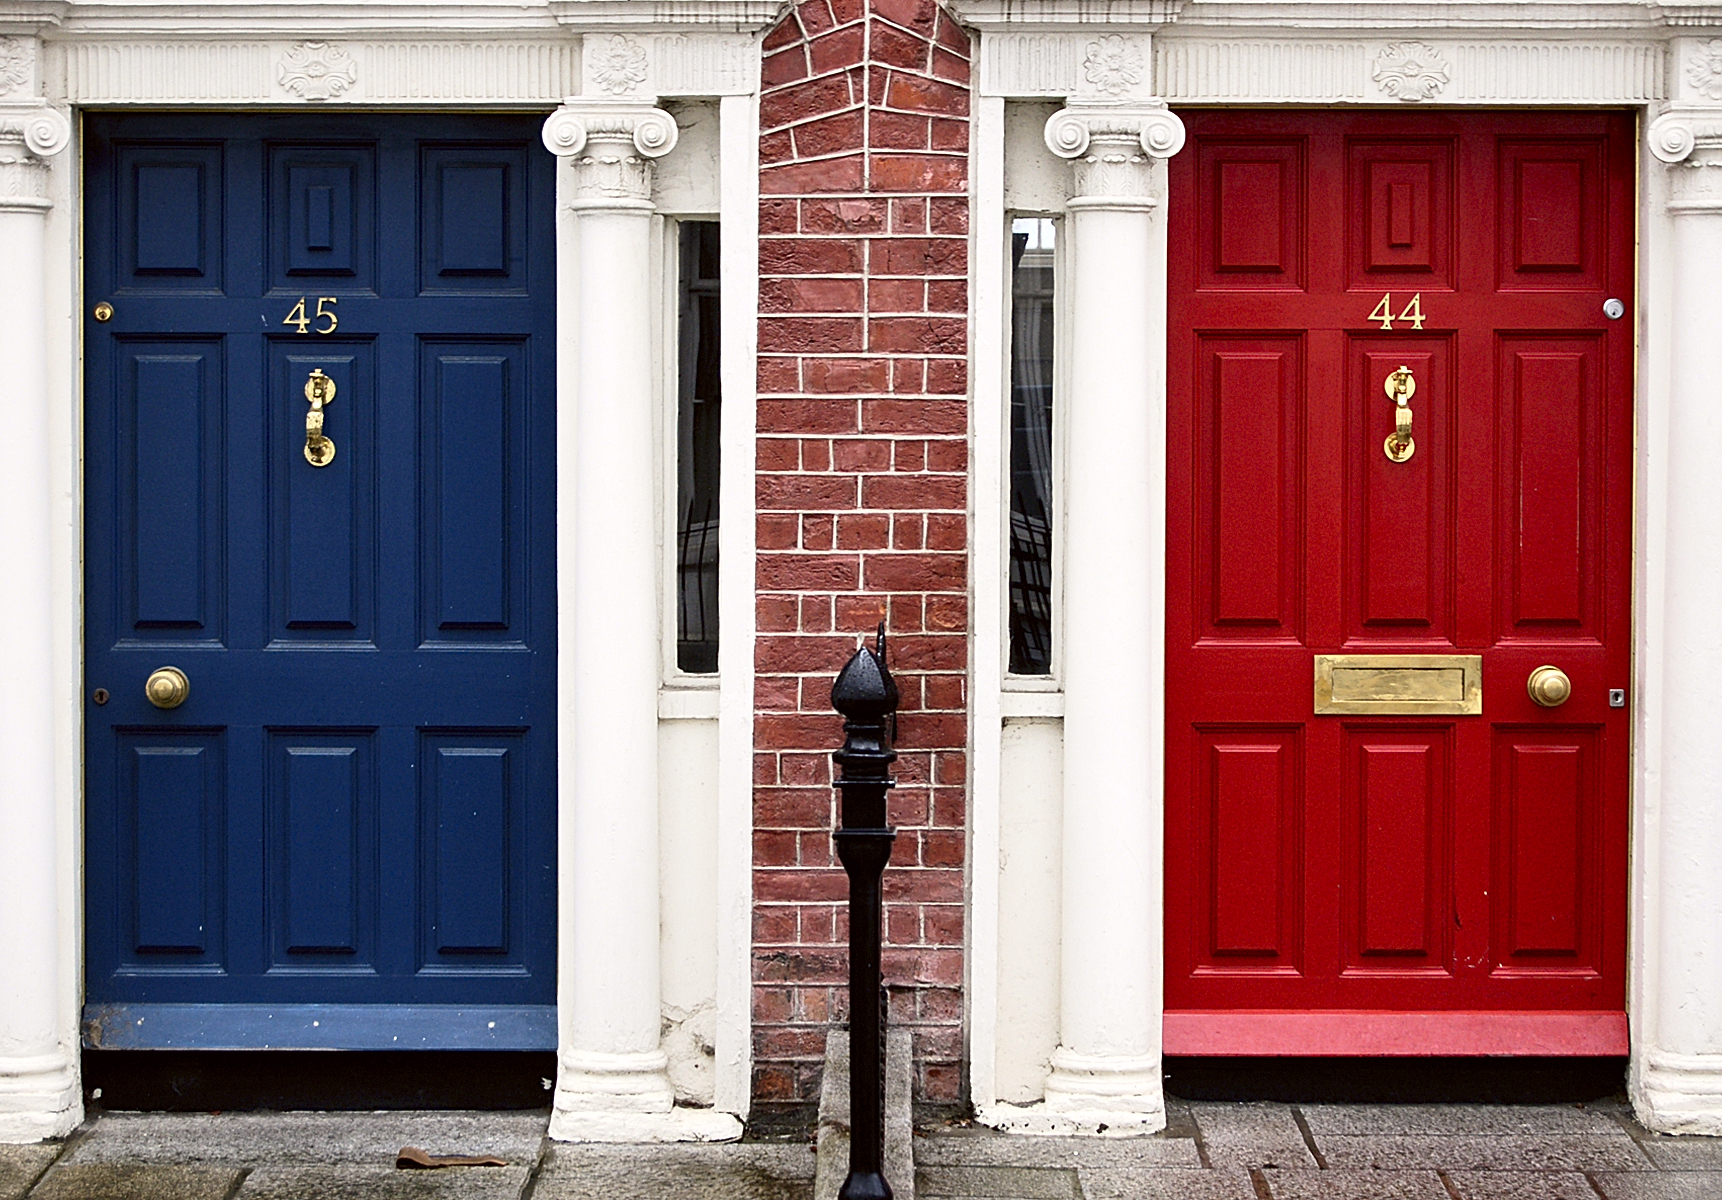 FileBlue and red doors (256704837).jpg & File:Blue and red doors (256704837).jpg - Wikimedia Commons